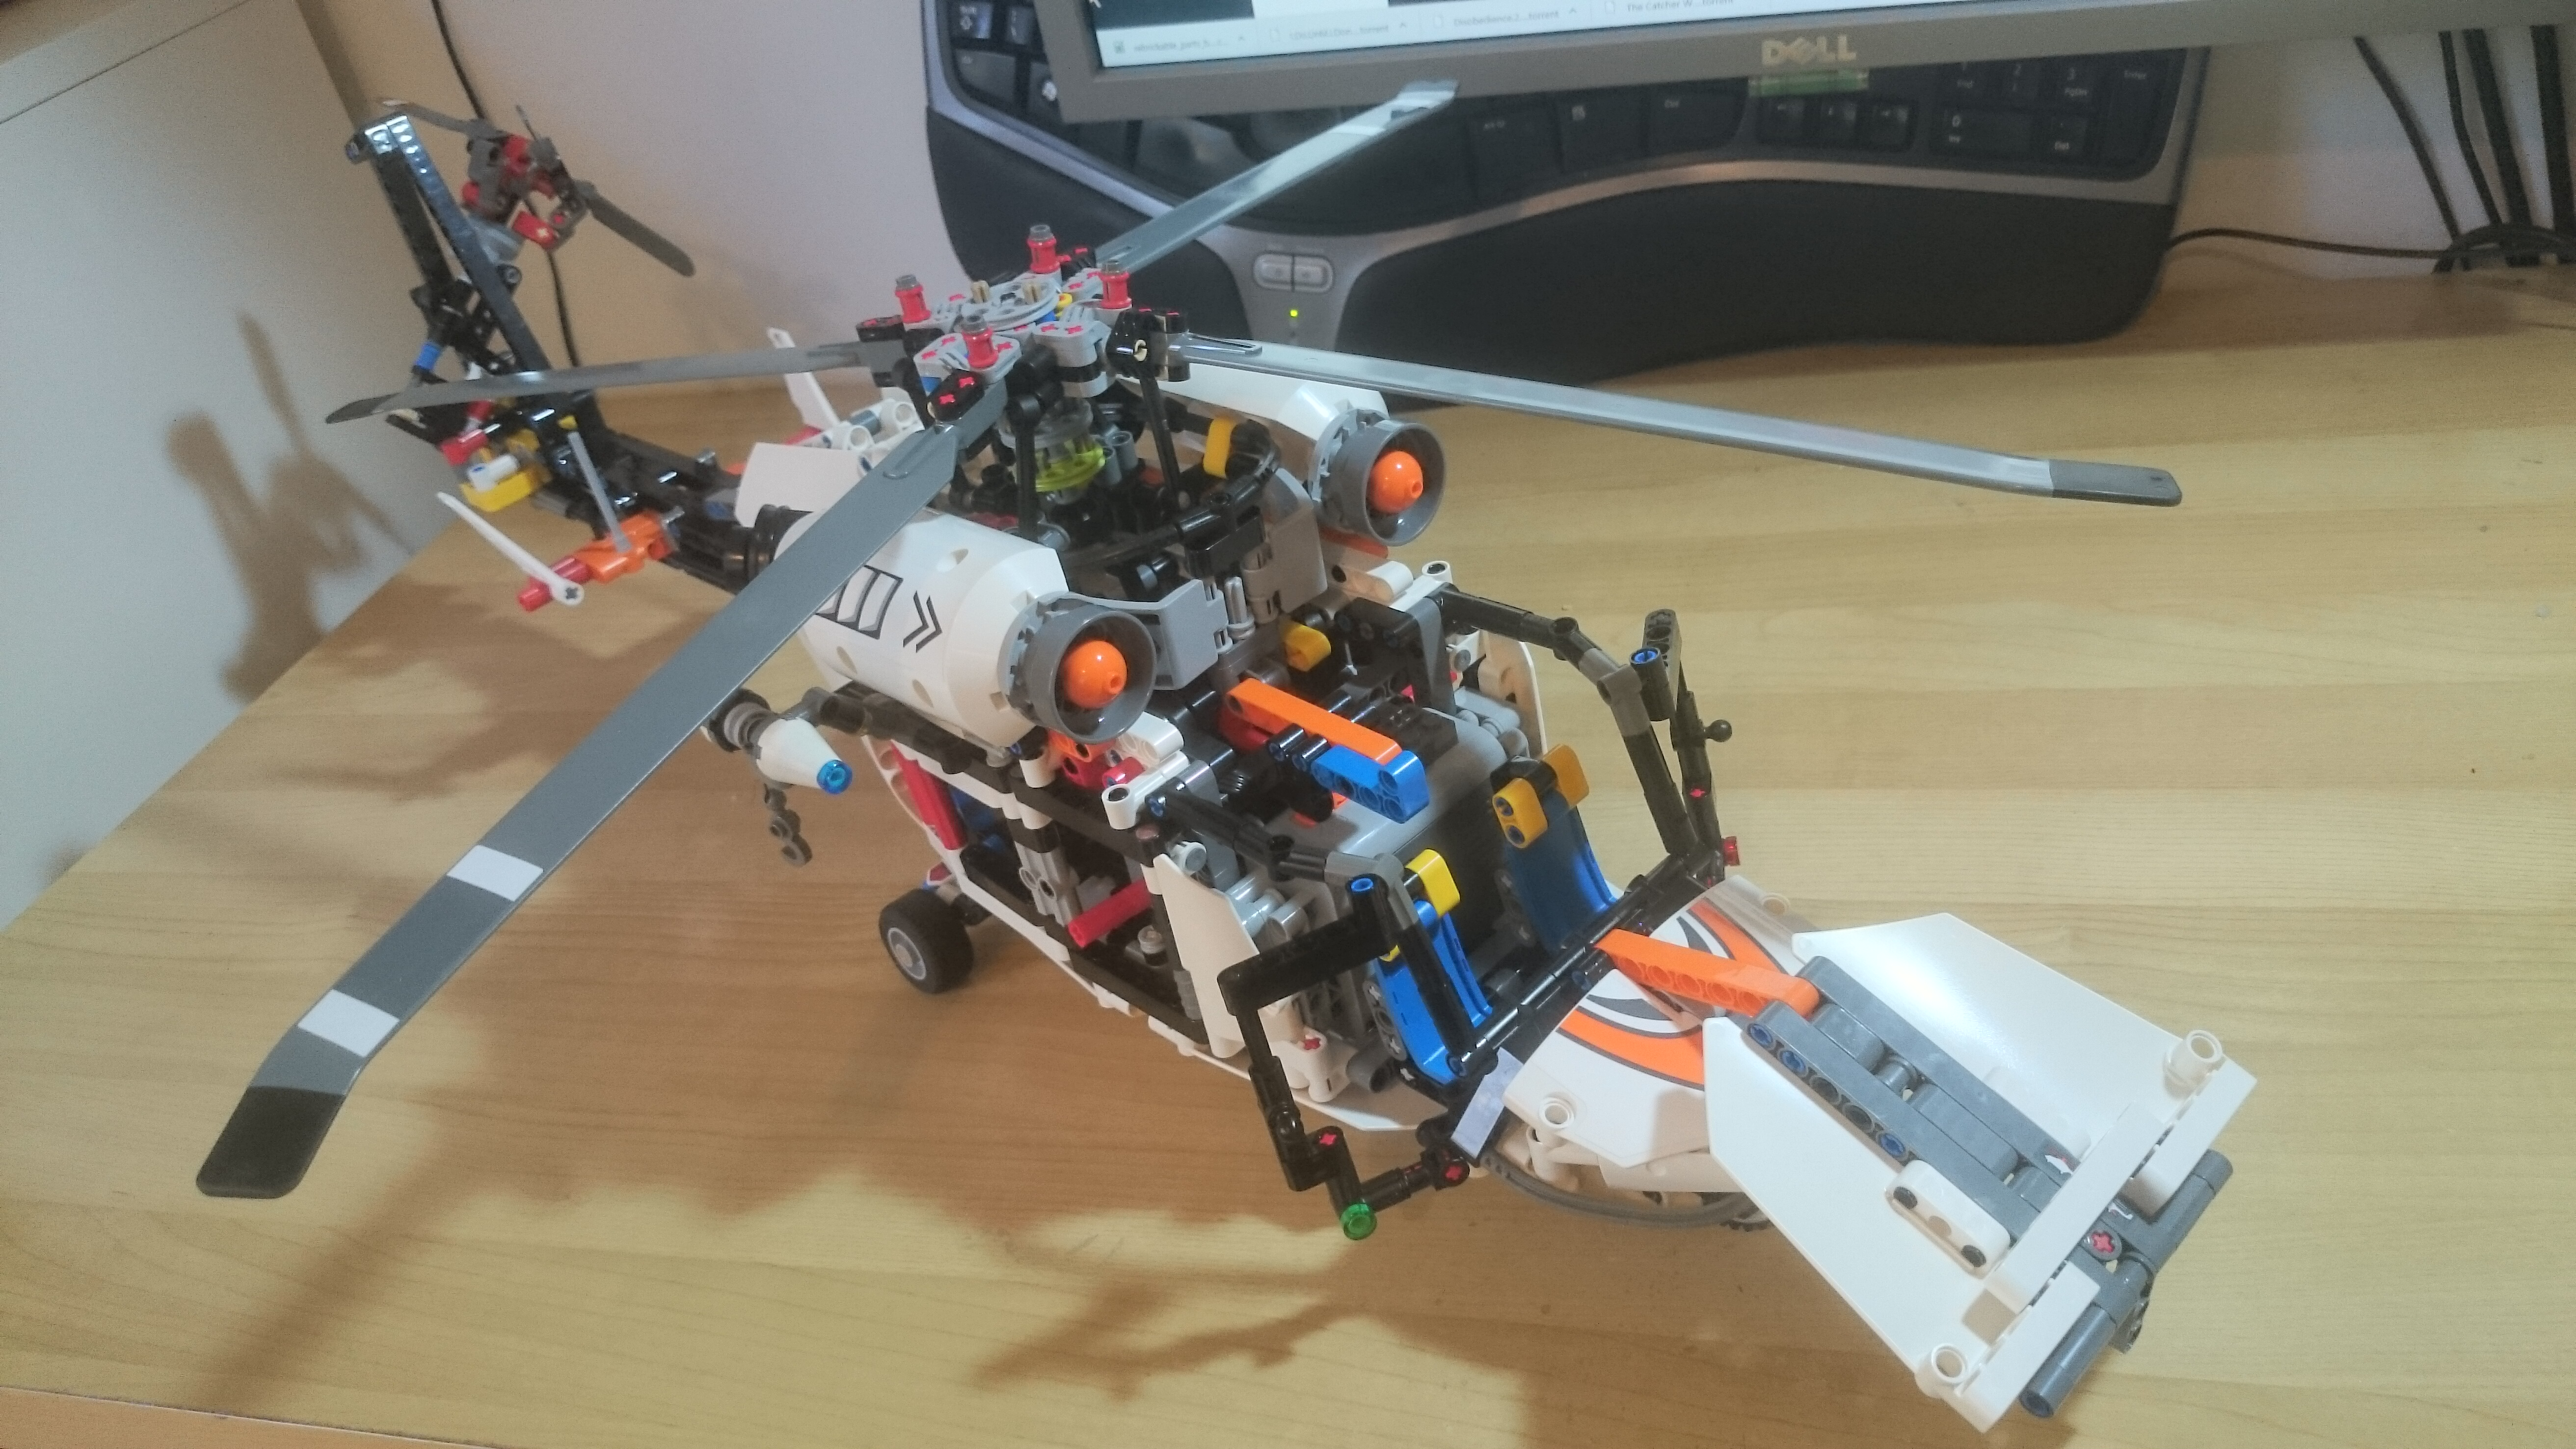 LEGO MOC-12600 AW 169 Helicopter (Technic > Model